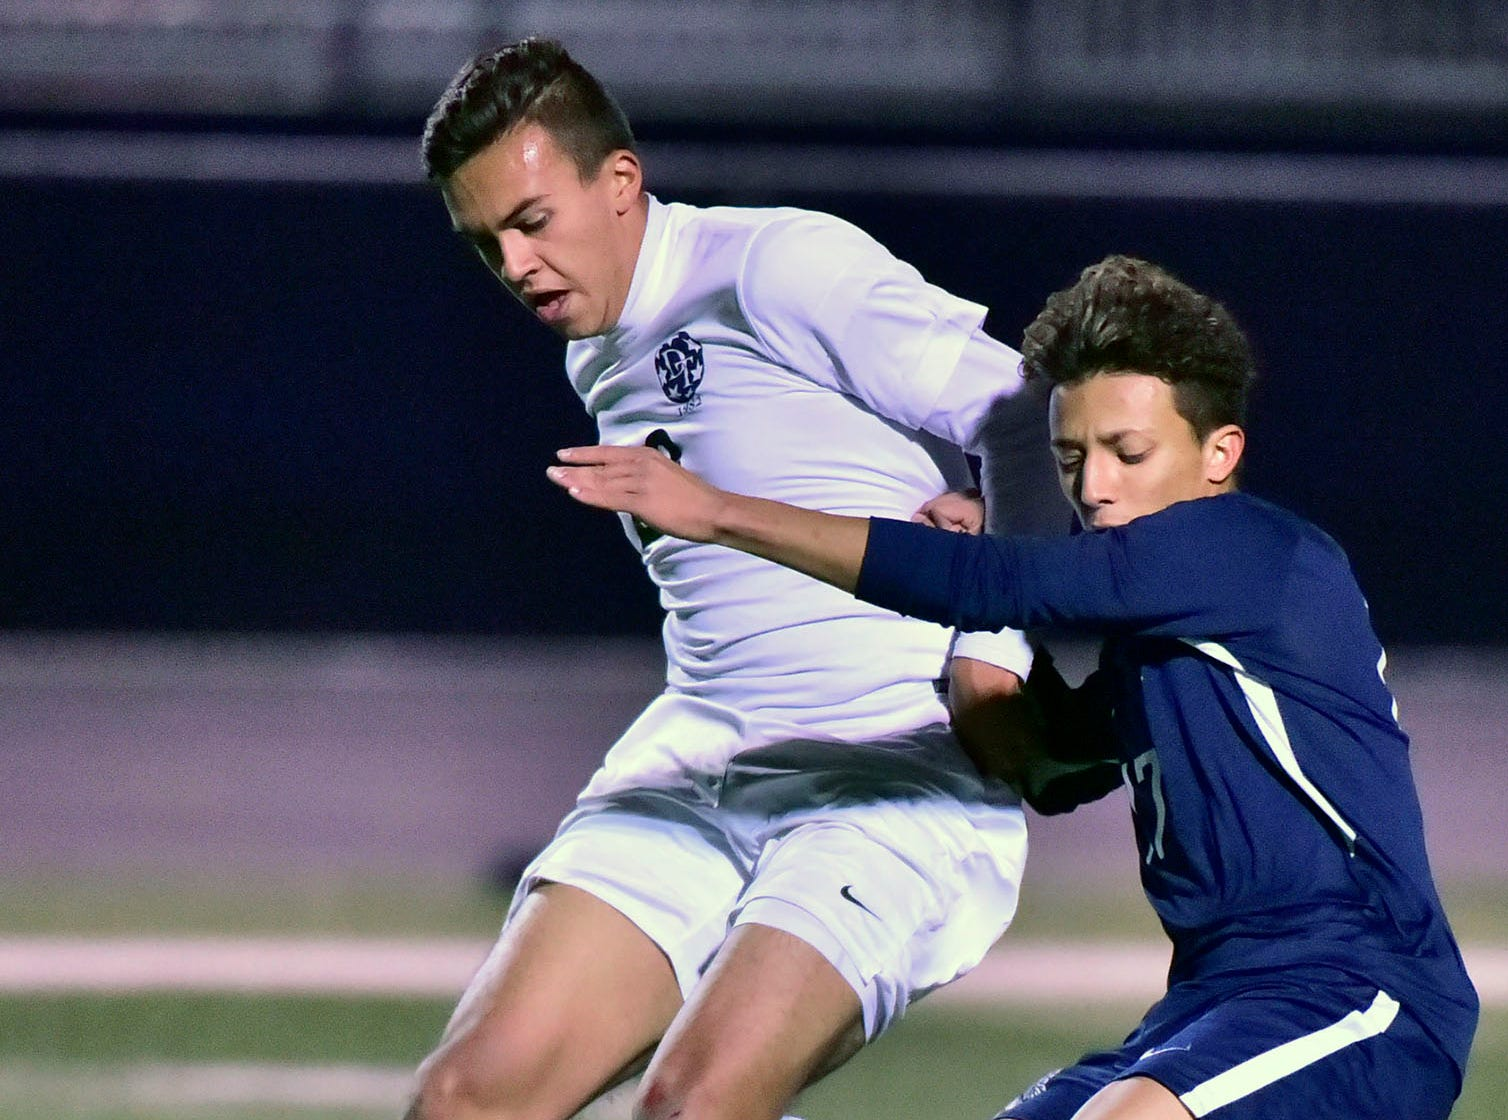 Gabe Wunderlich, left, of Dallastown, tries to move the ball around Chambersburg's Chuy Munoz. Chambersburg lost a first round D3 soccer match to Dallastown 2-1 on Tuesday, Oct. 23, 2018.